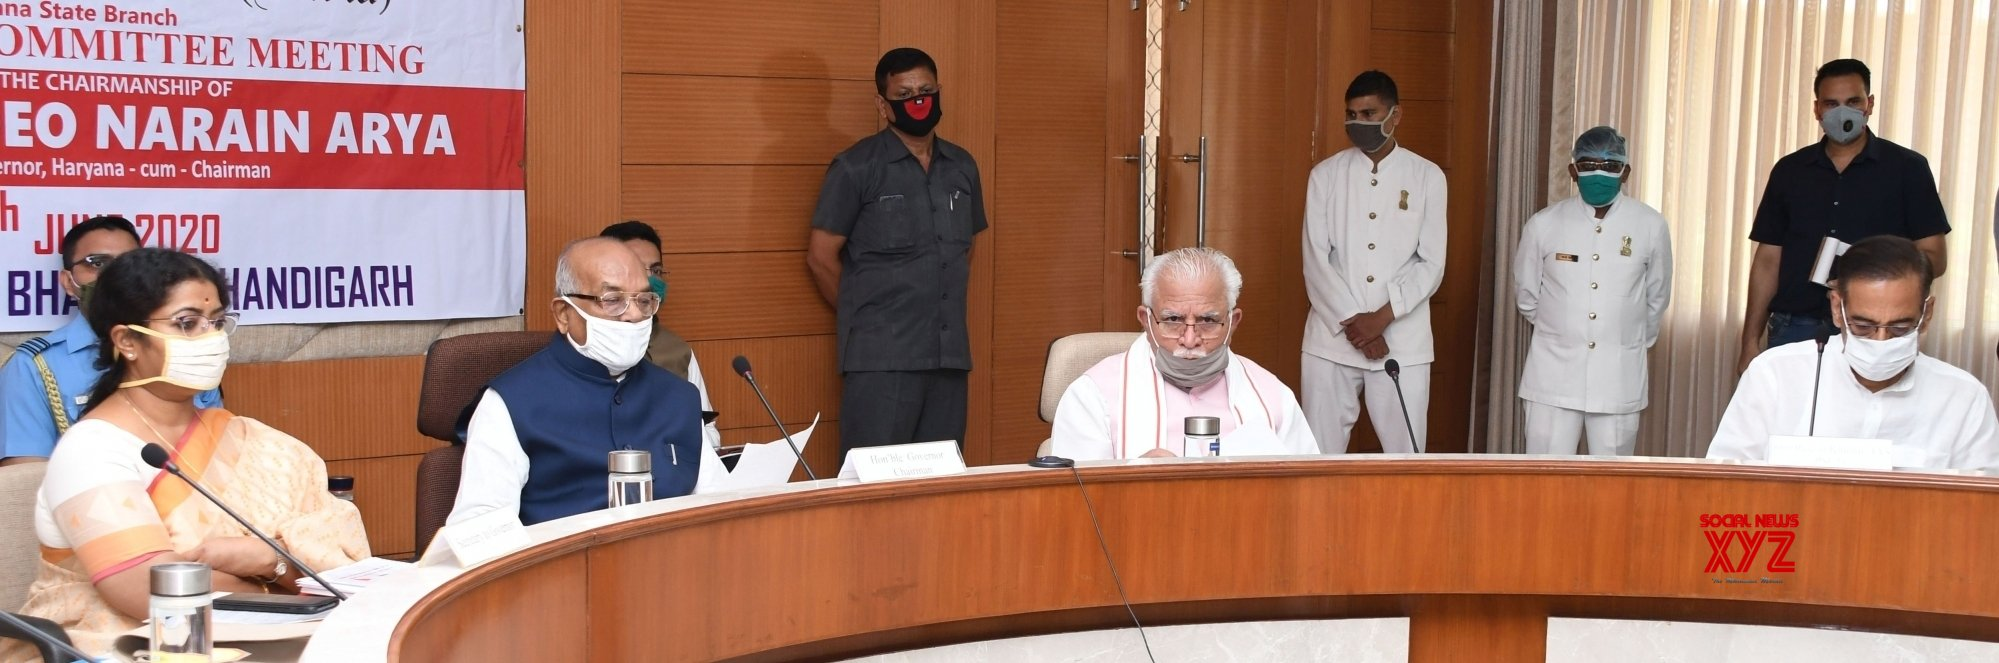 Chandigarh: Haryana Governor chairs meeting of managing committee of Indian Red Cross Society's State Branch #Gallery